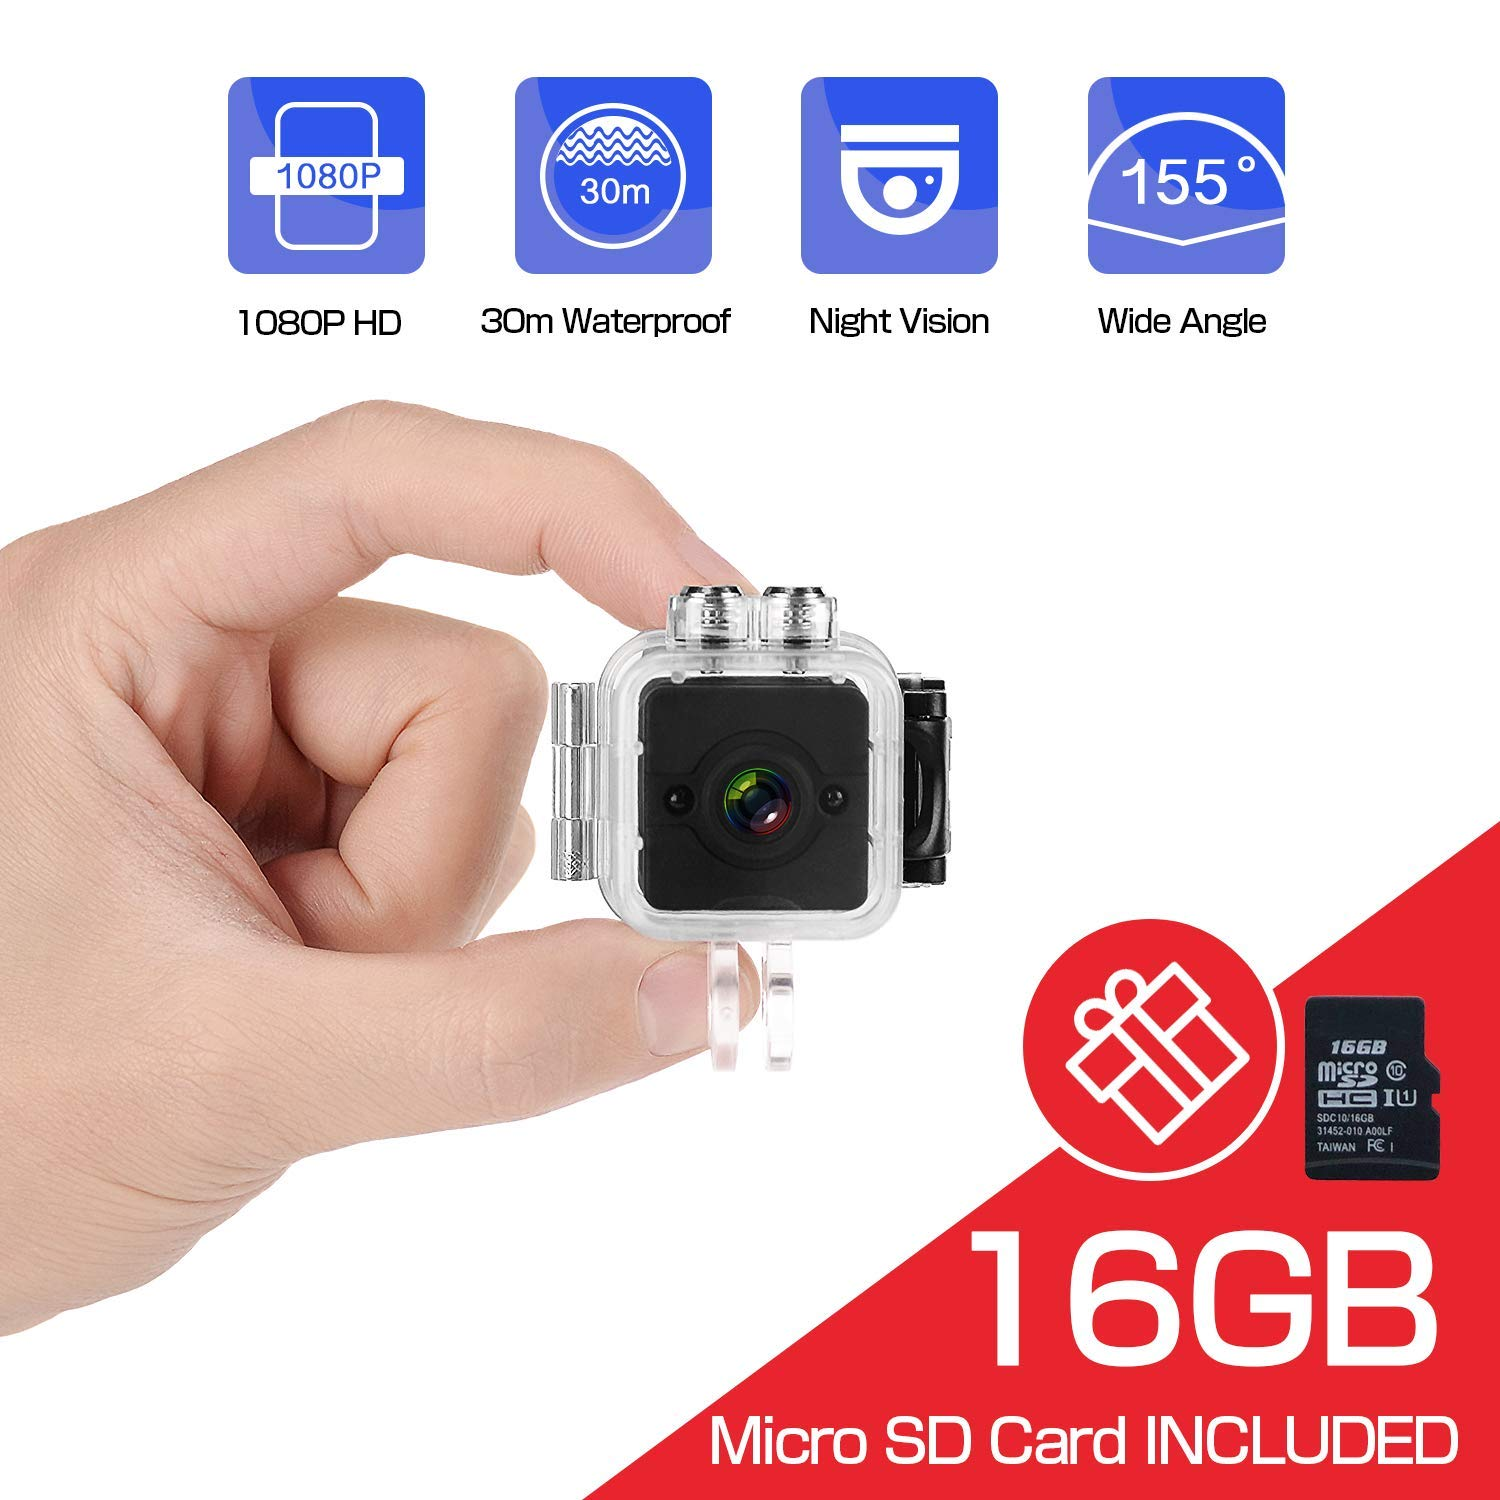 Mini Hidden Cameras, HD 1080P Wireless Nanny Spy Video Recording Cameras, Waterproof Tiny Security Surveillance Cam with Night Vision/Motion Detection for Indoor/Outdoor/Home/Car/Office Security-Come